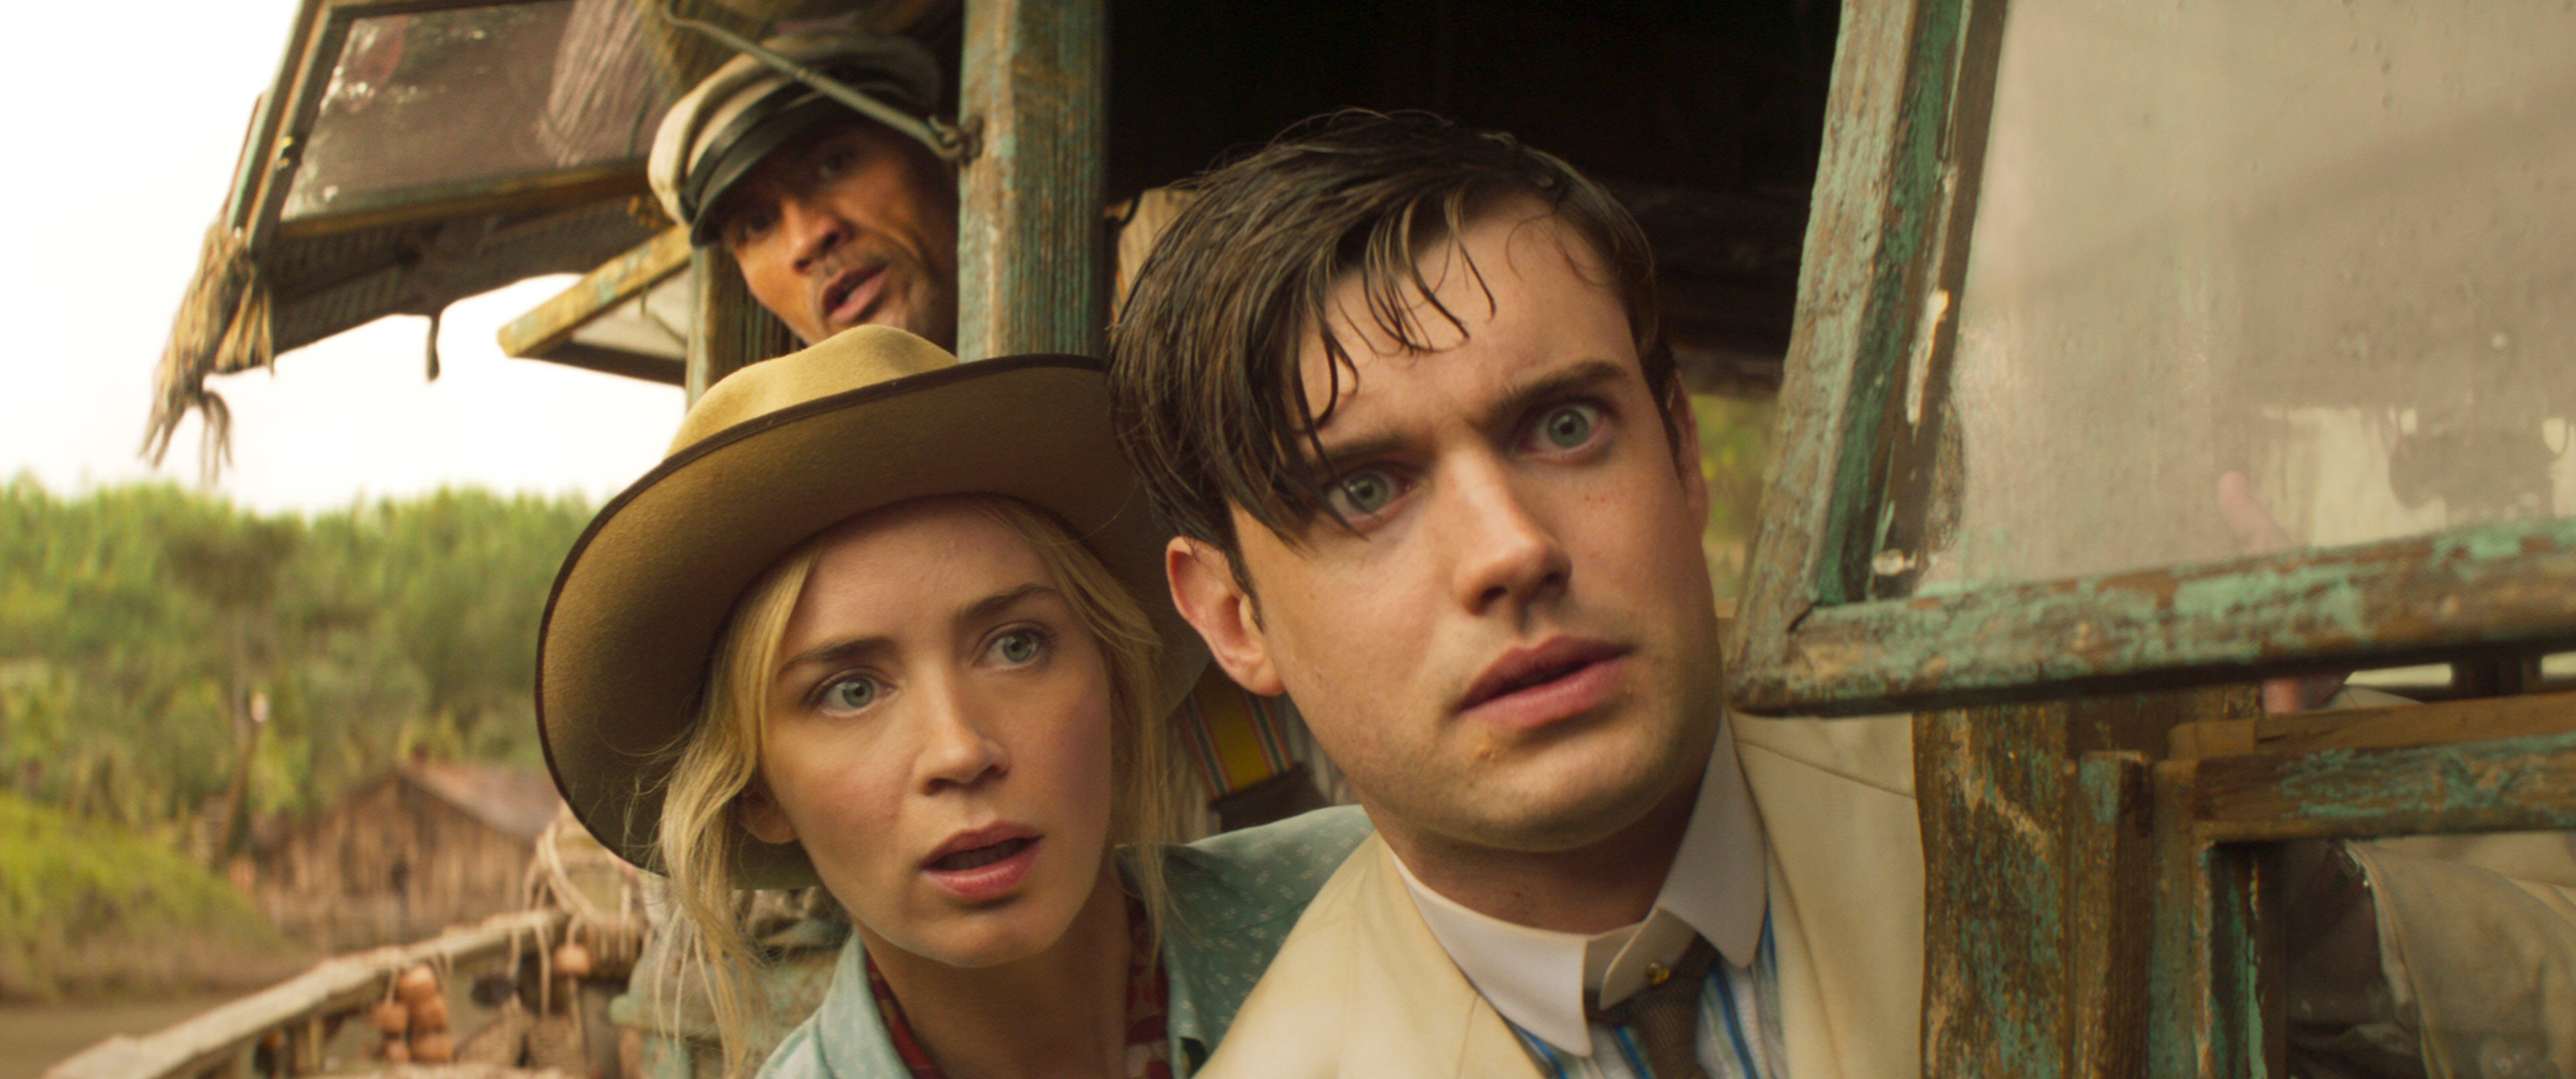 The Rock, Emily Blunt and Jack Whitehall in Jungle Cruise